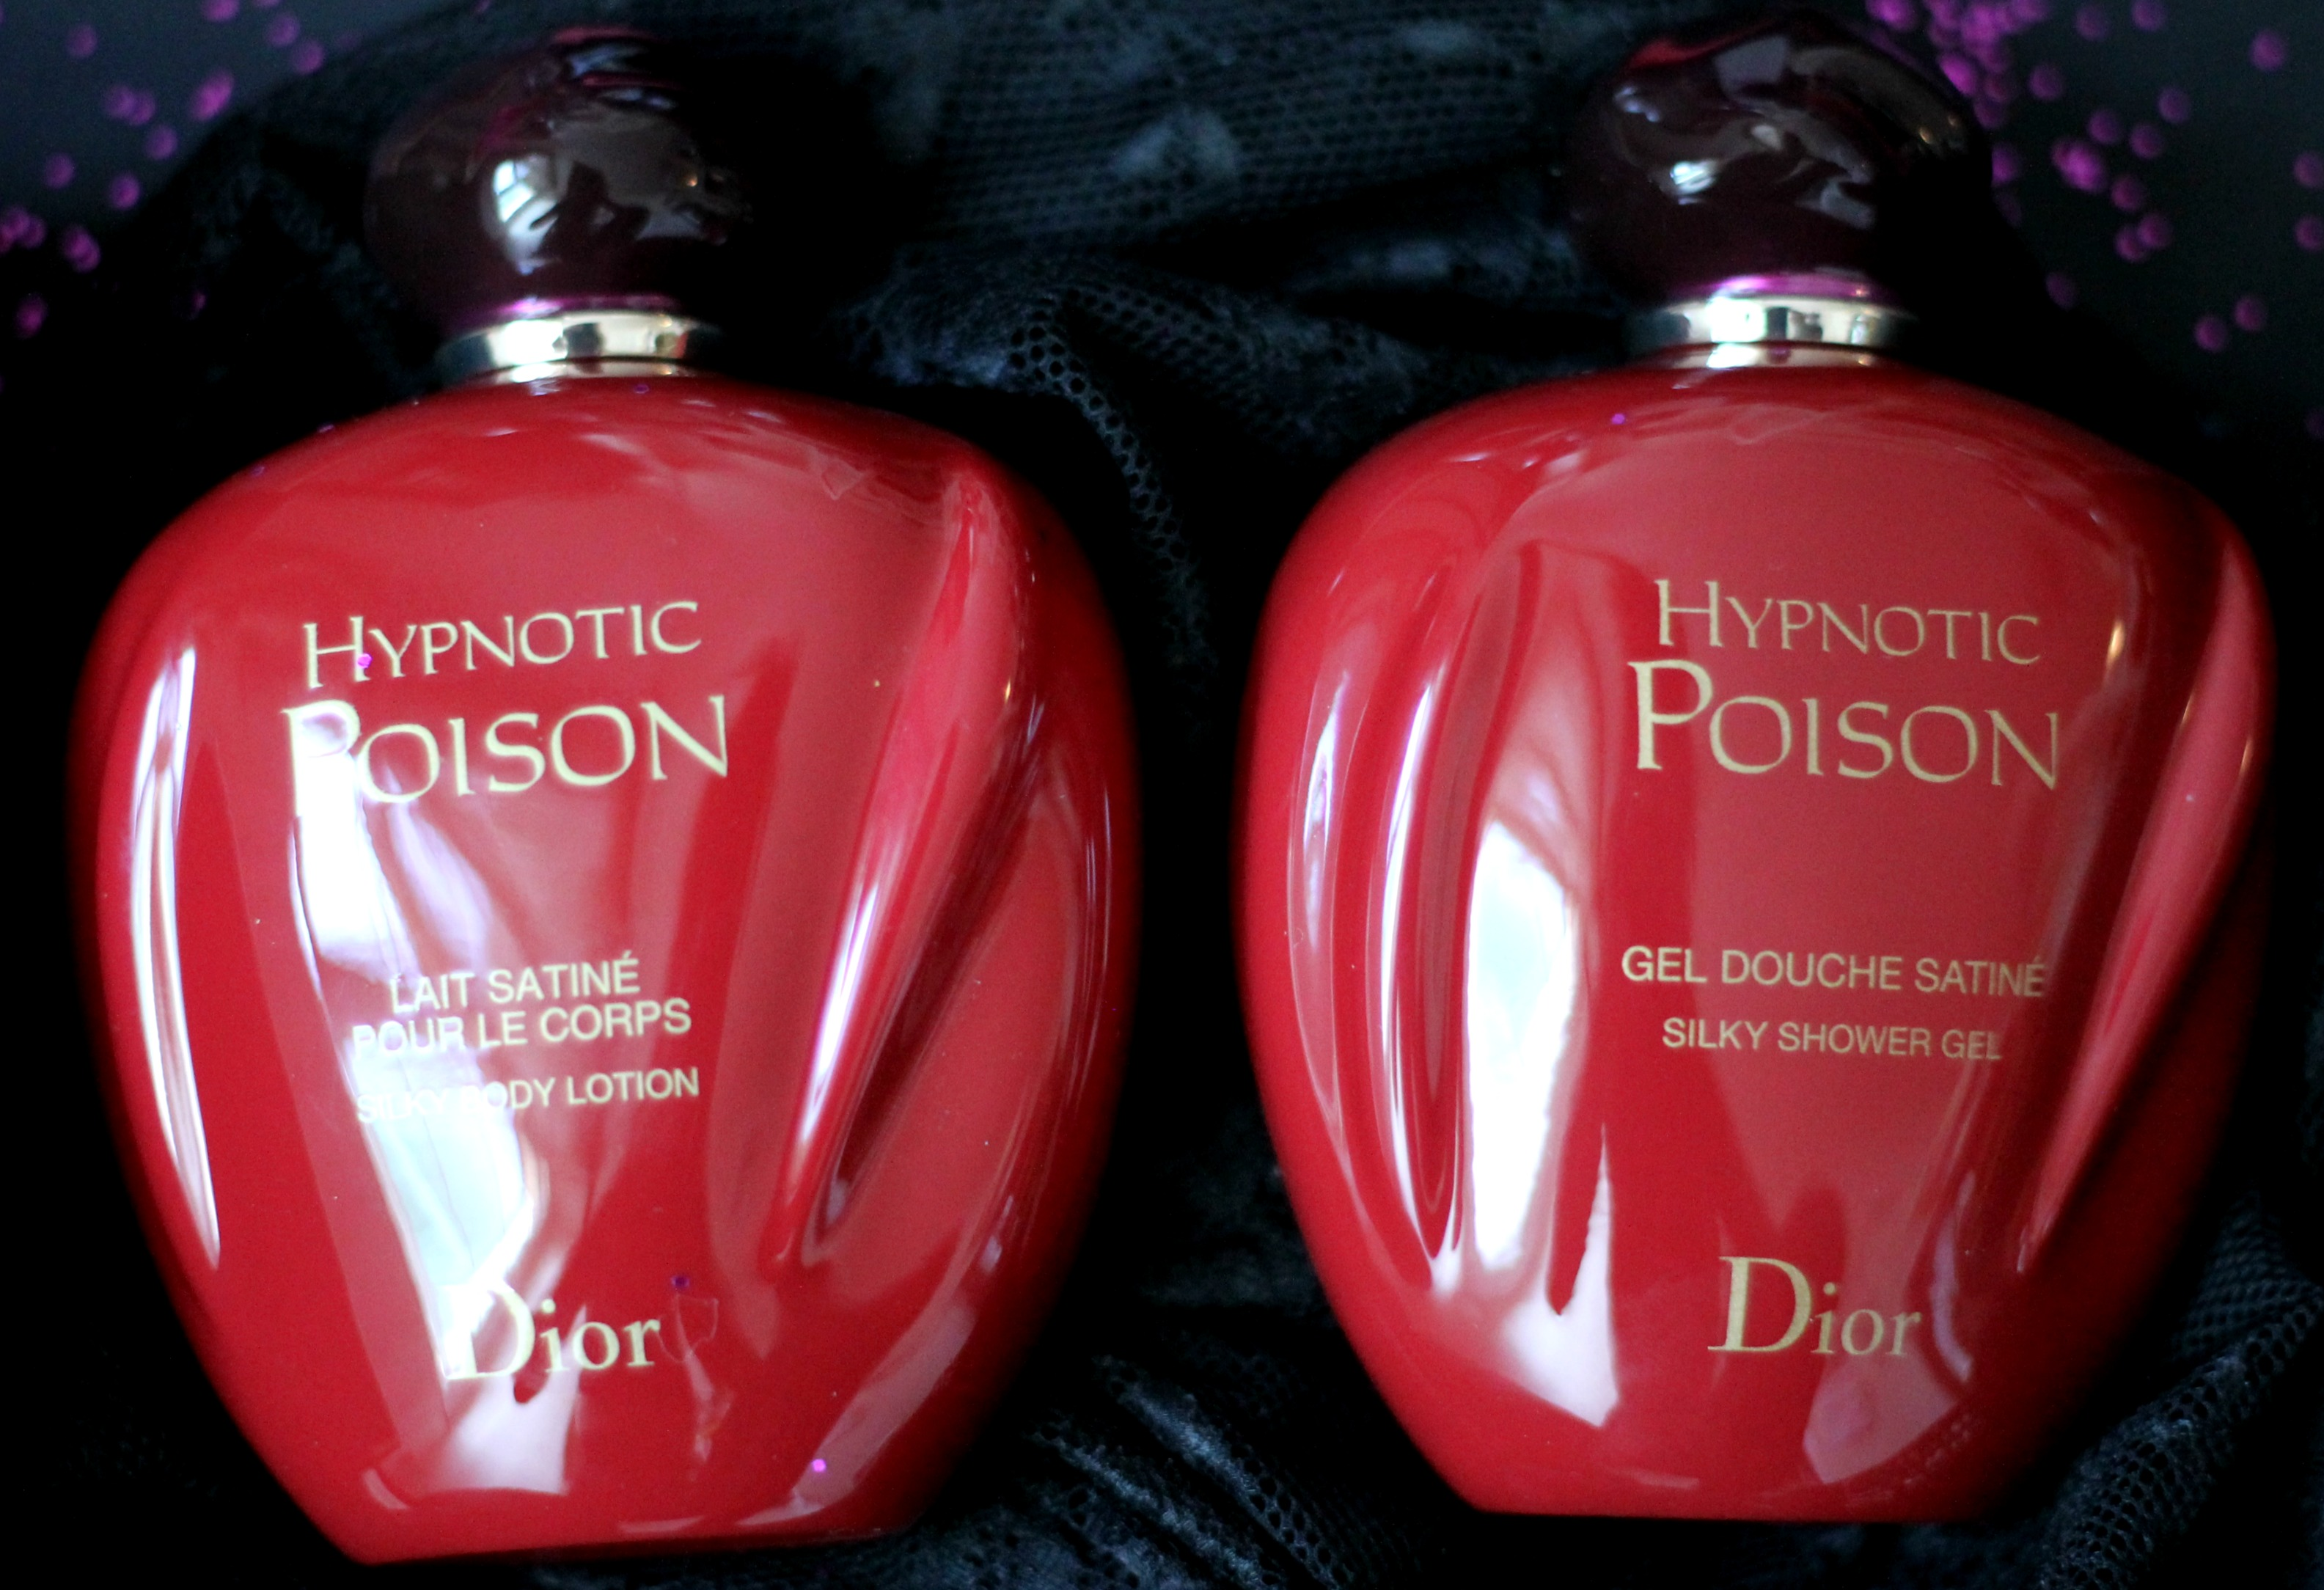 i am poison dior, theladycracy.it, elisa bellino, dior beauty blogger, dior parfum, profumi più buoni, dior perfums, dior poison, hypnotic poison, fashion blogger famose italia, fashion blog moda, fashion blogger italiane, fashion blog italia, theladycracy.it, elisa bellino, profumi dior più buoni, profumi persistenti